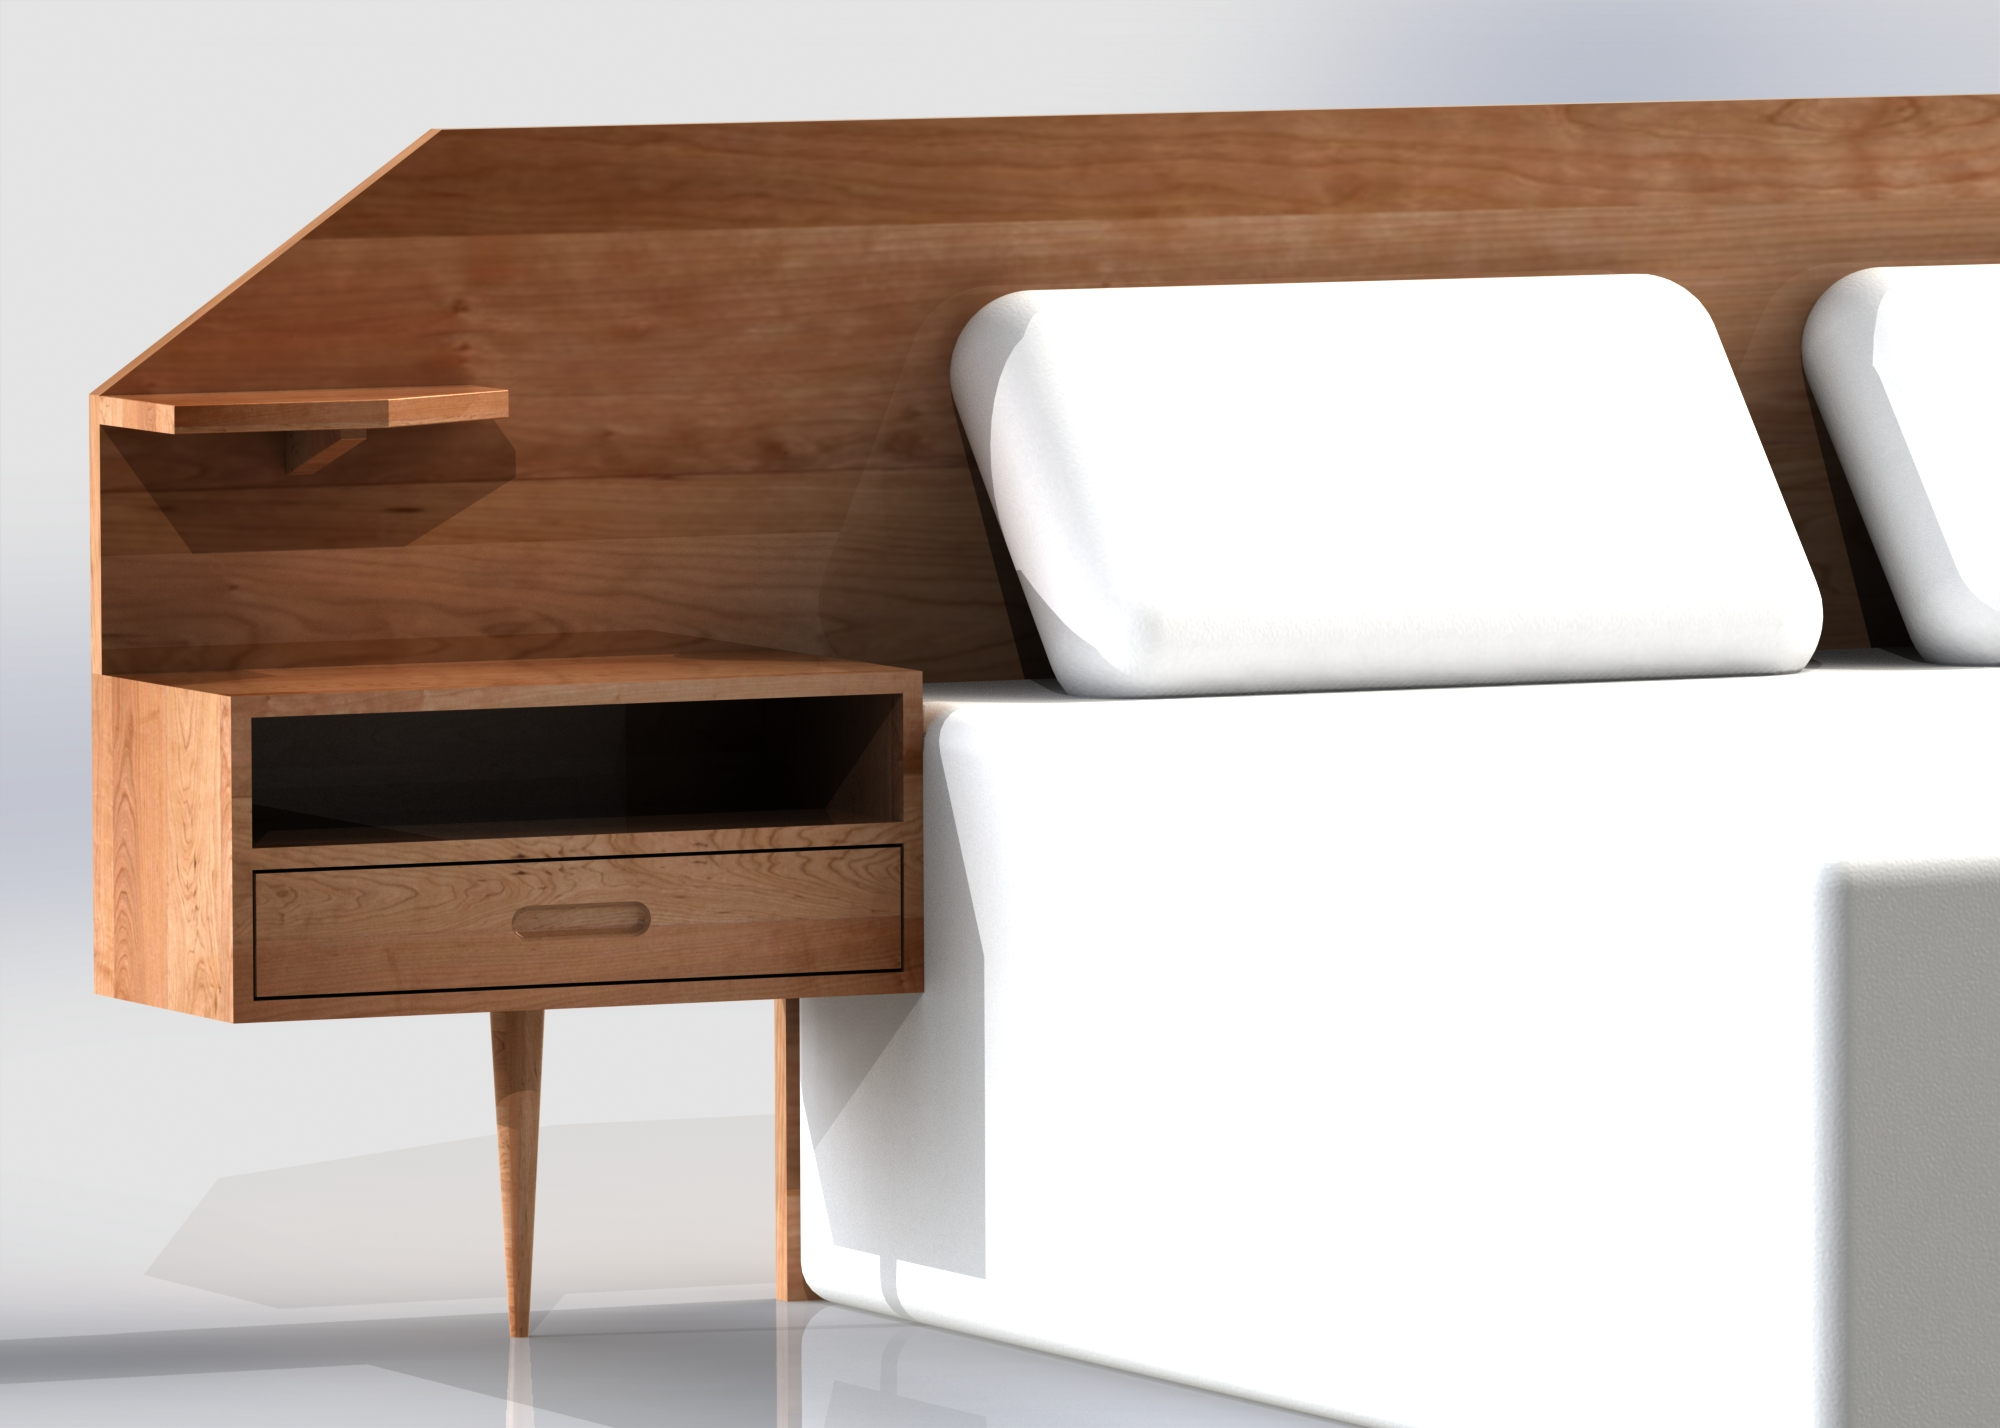 Diana_Mercado_Bed_Frame_Rendering_Version_6_2.JPG